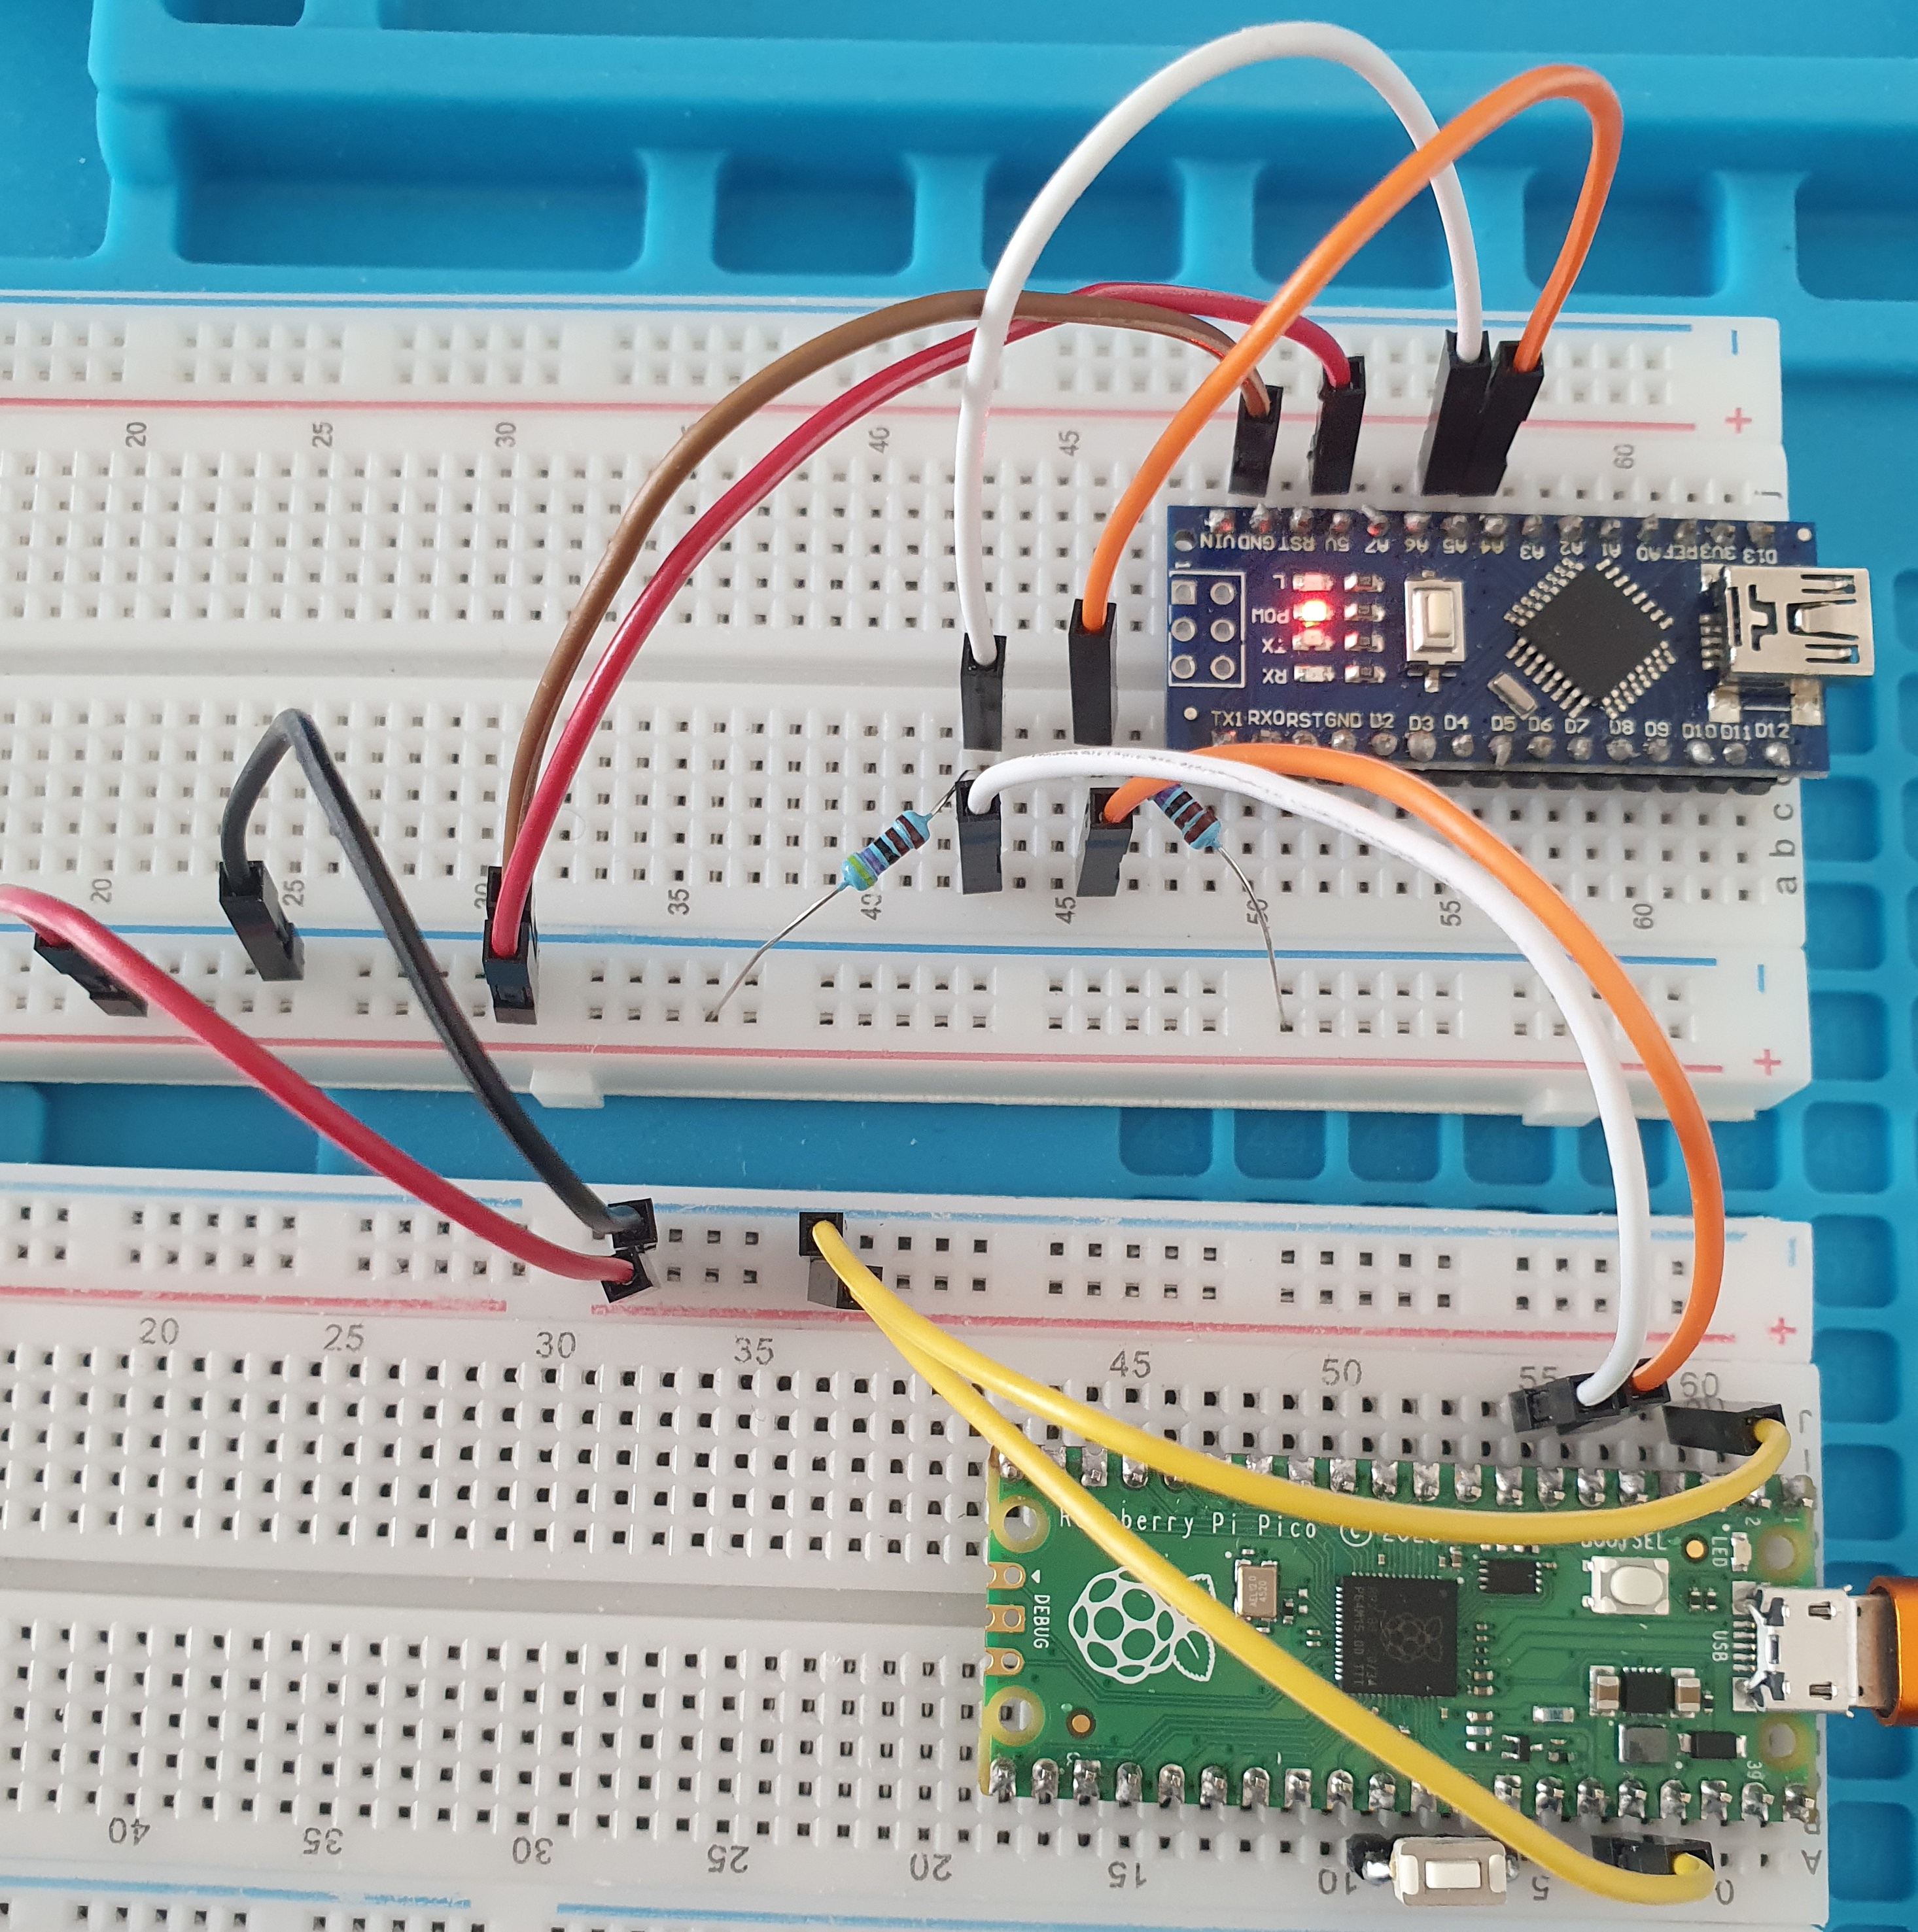 Wiring Arduino and Raspberry Pi Pico